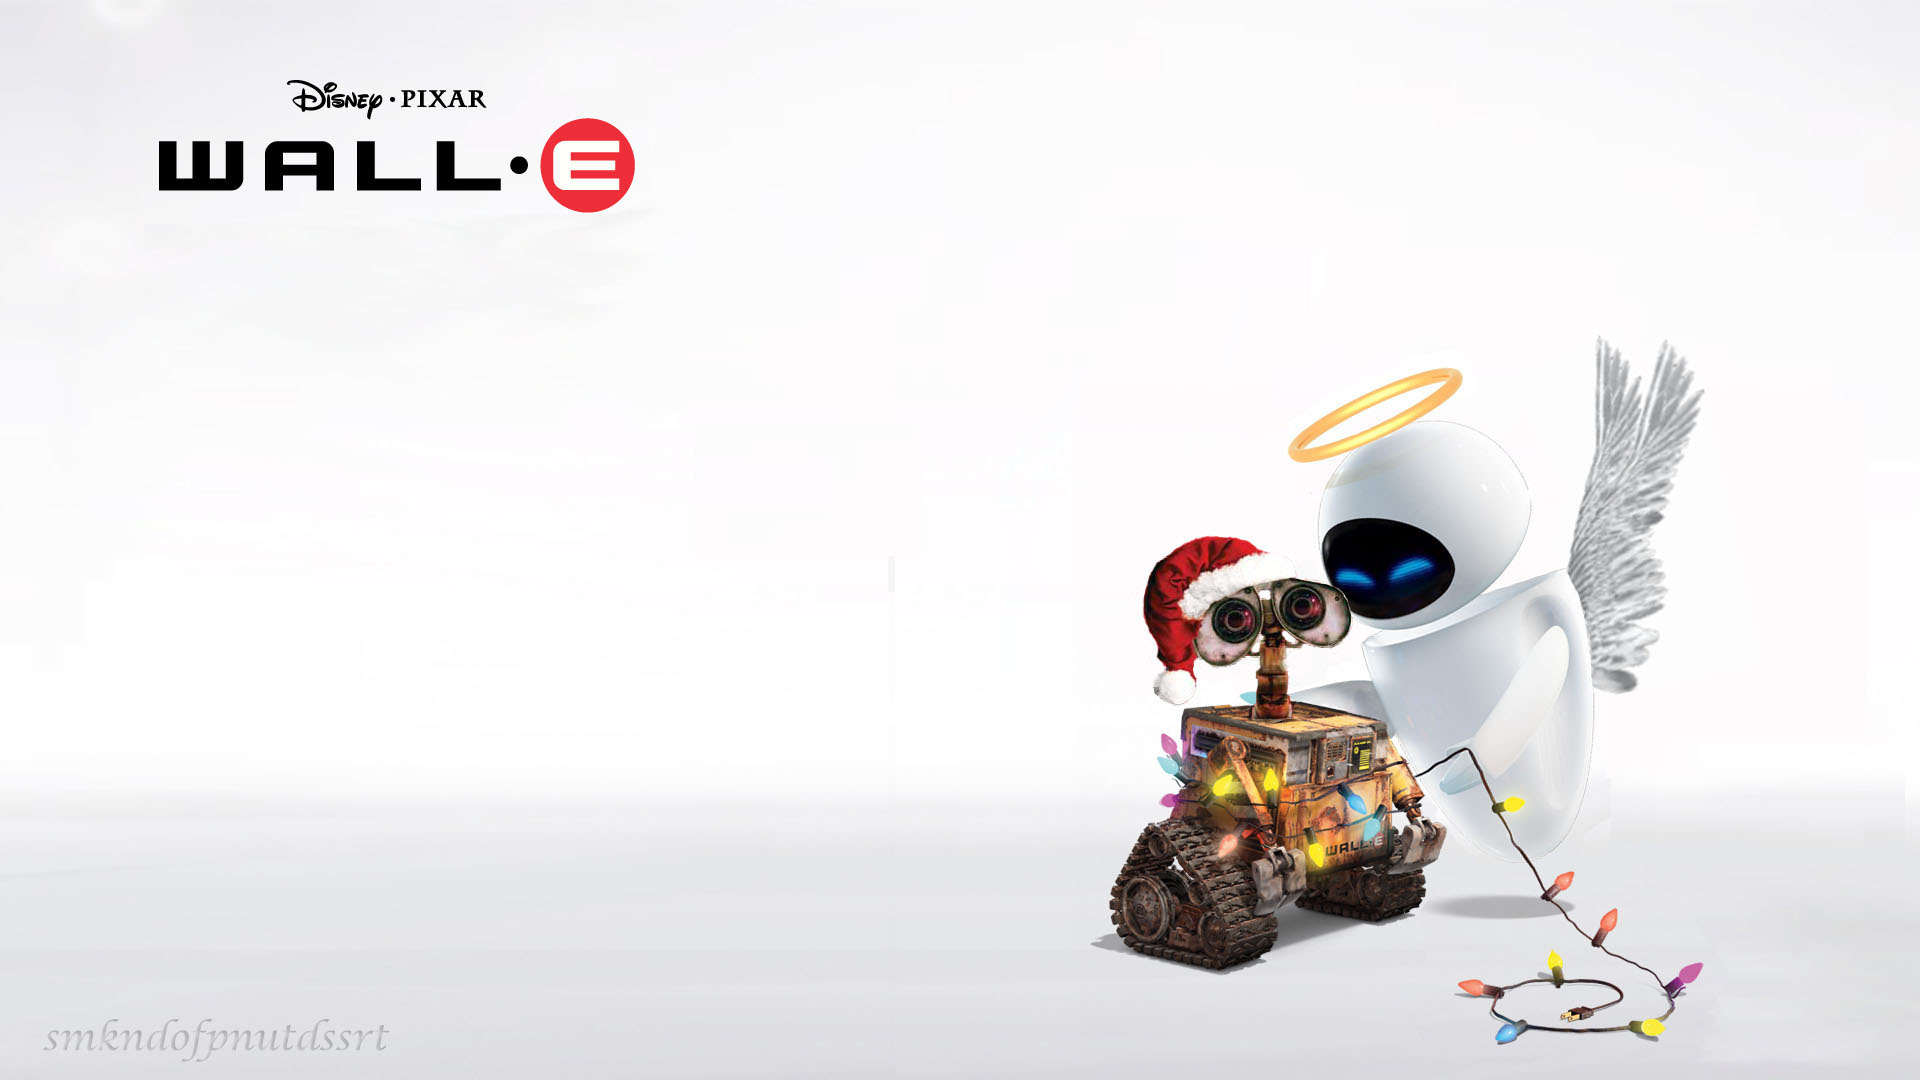 WALL-E Christmas Wallpaper by smkndofpnutdssrt